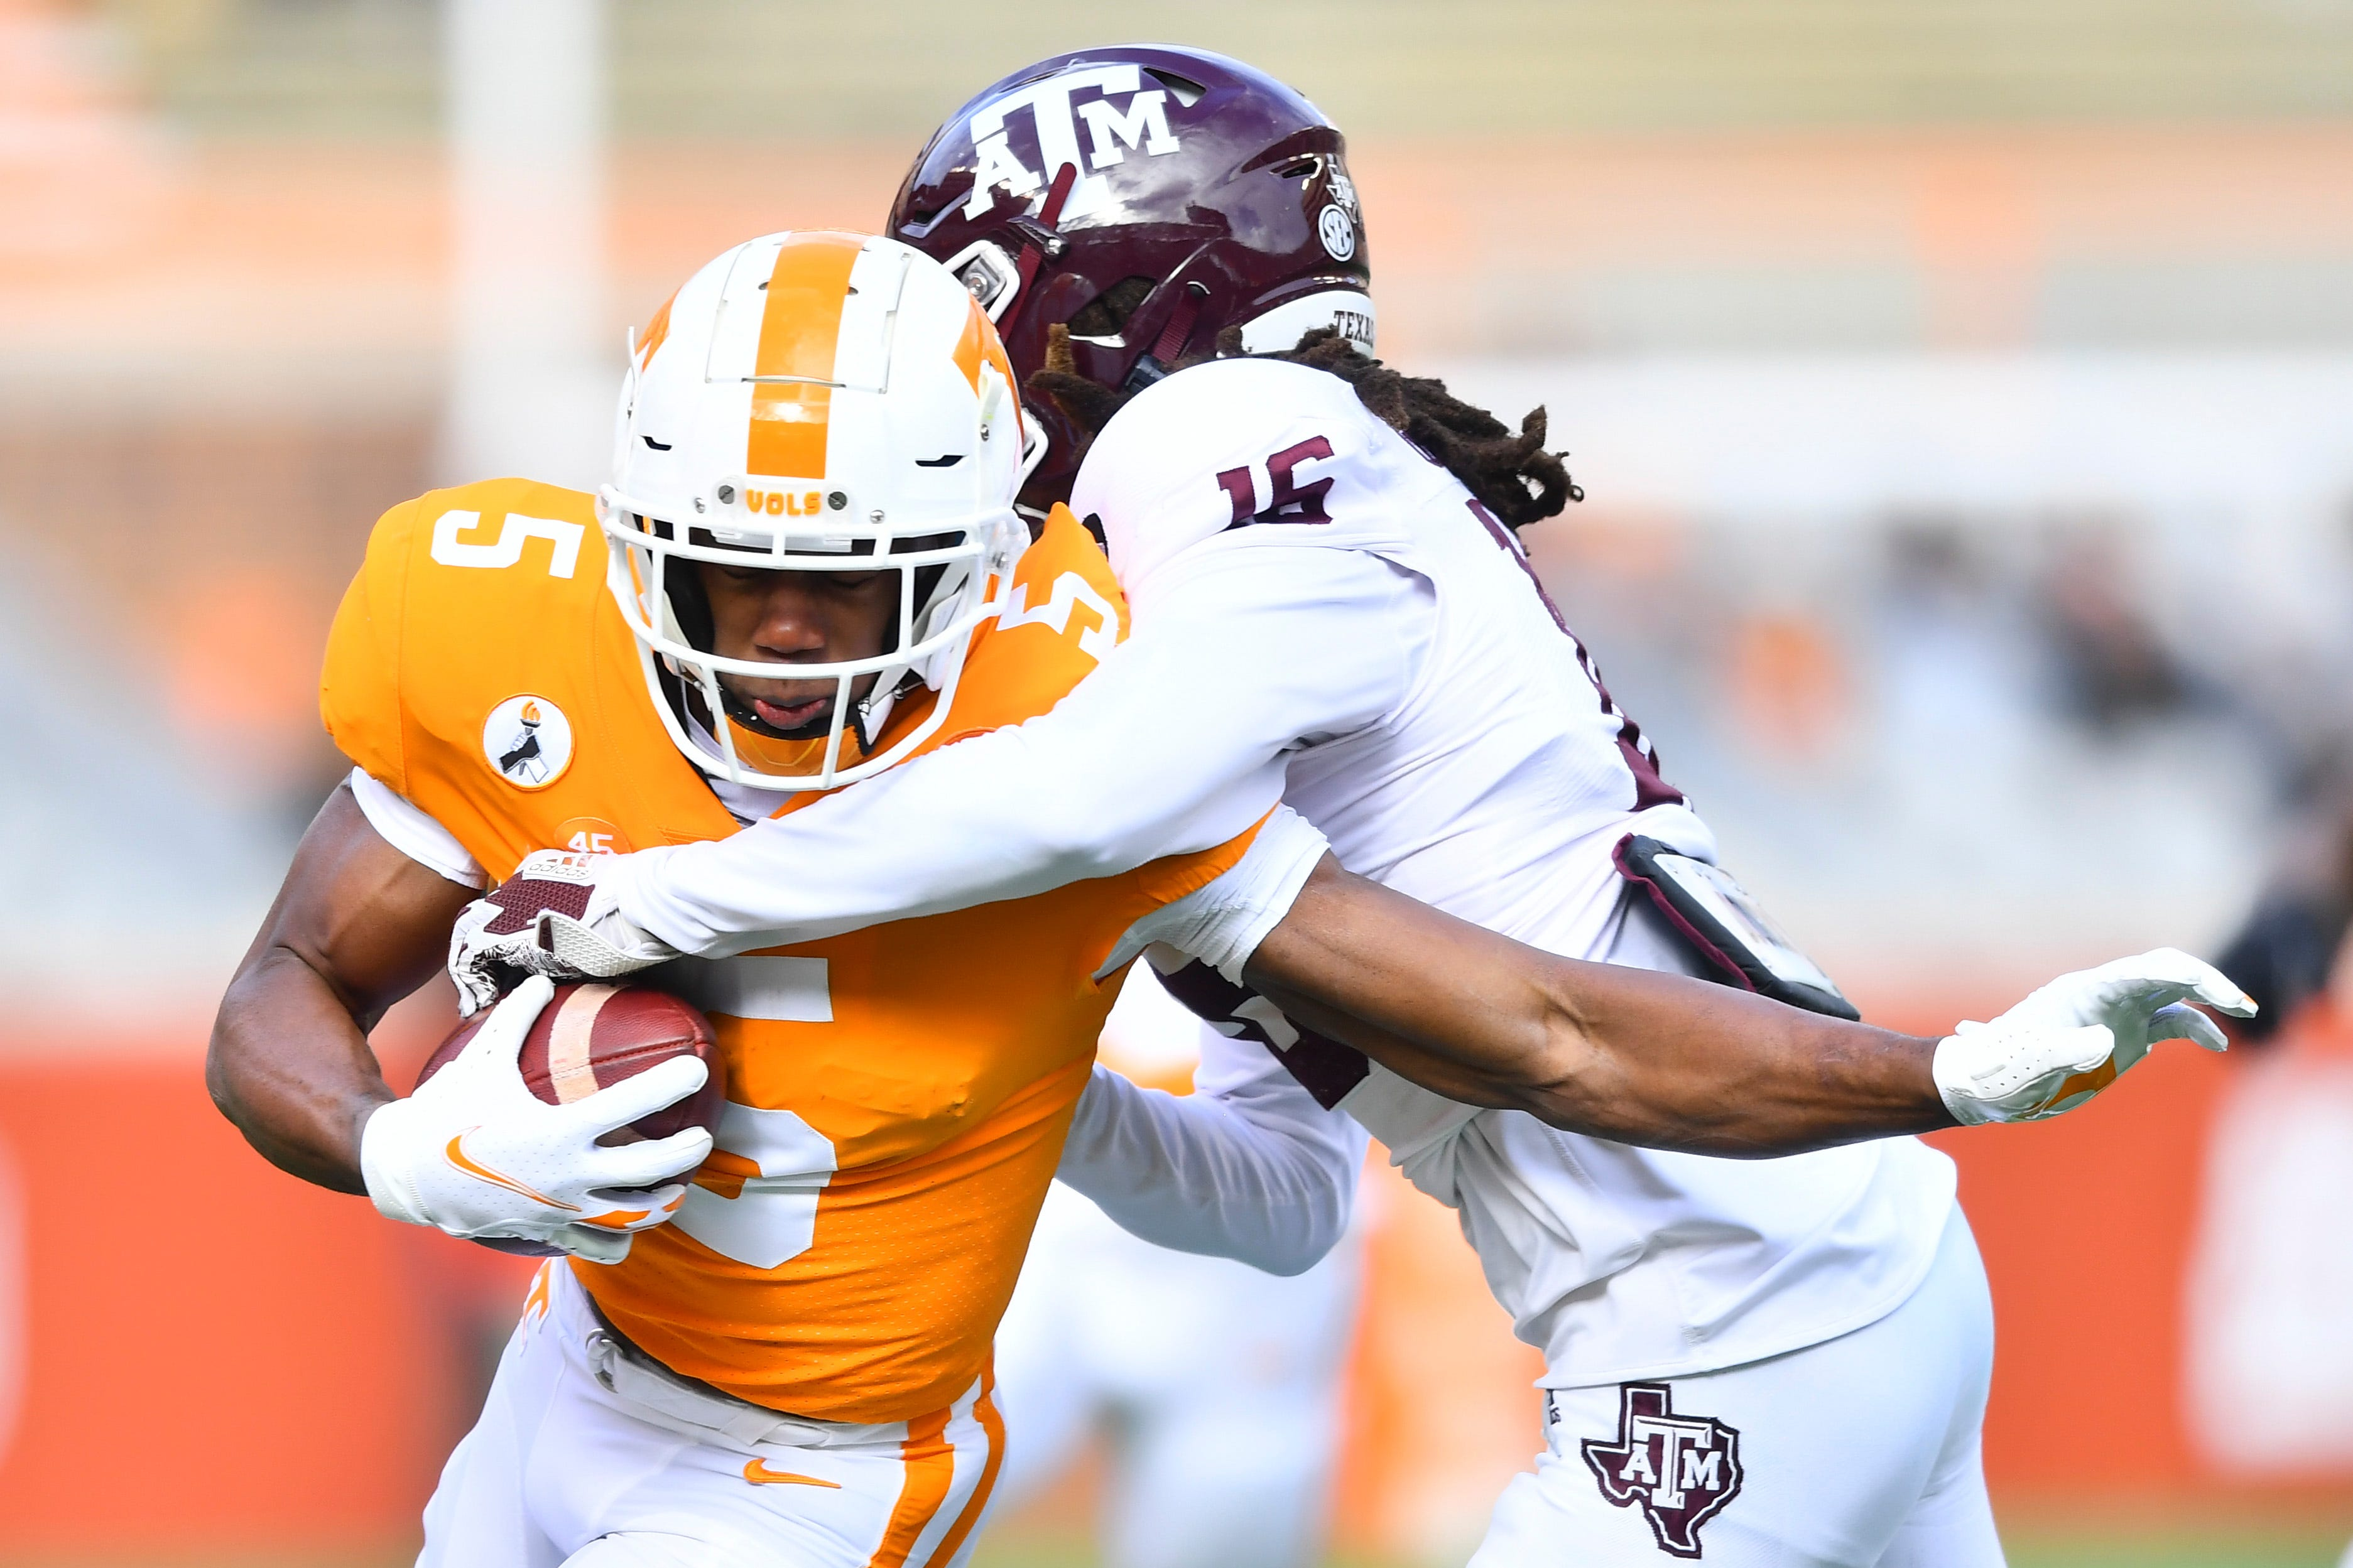 Tennessee wide receiver Josh Palmer (5) is tackled by Texas A&M defensive back Brian George (16) during a game between Tennessee and Texas A&M in Neyland Stadium in Knoxville, Saturday, Dec. 19, 2020.